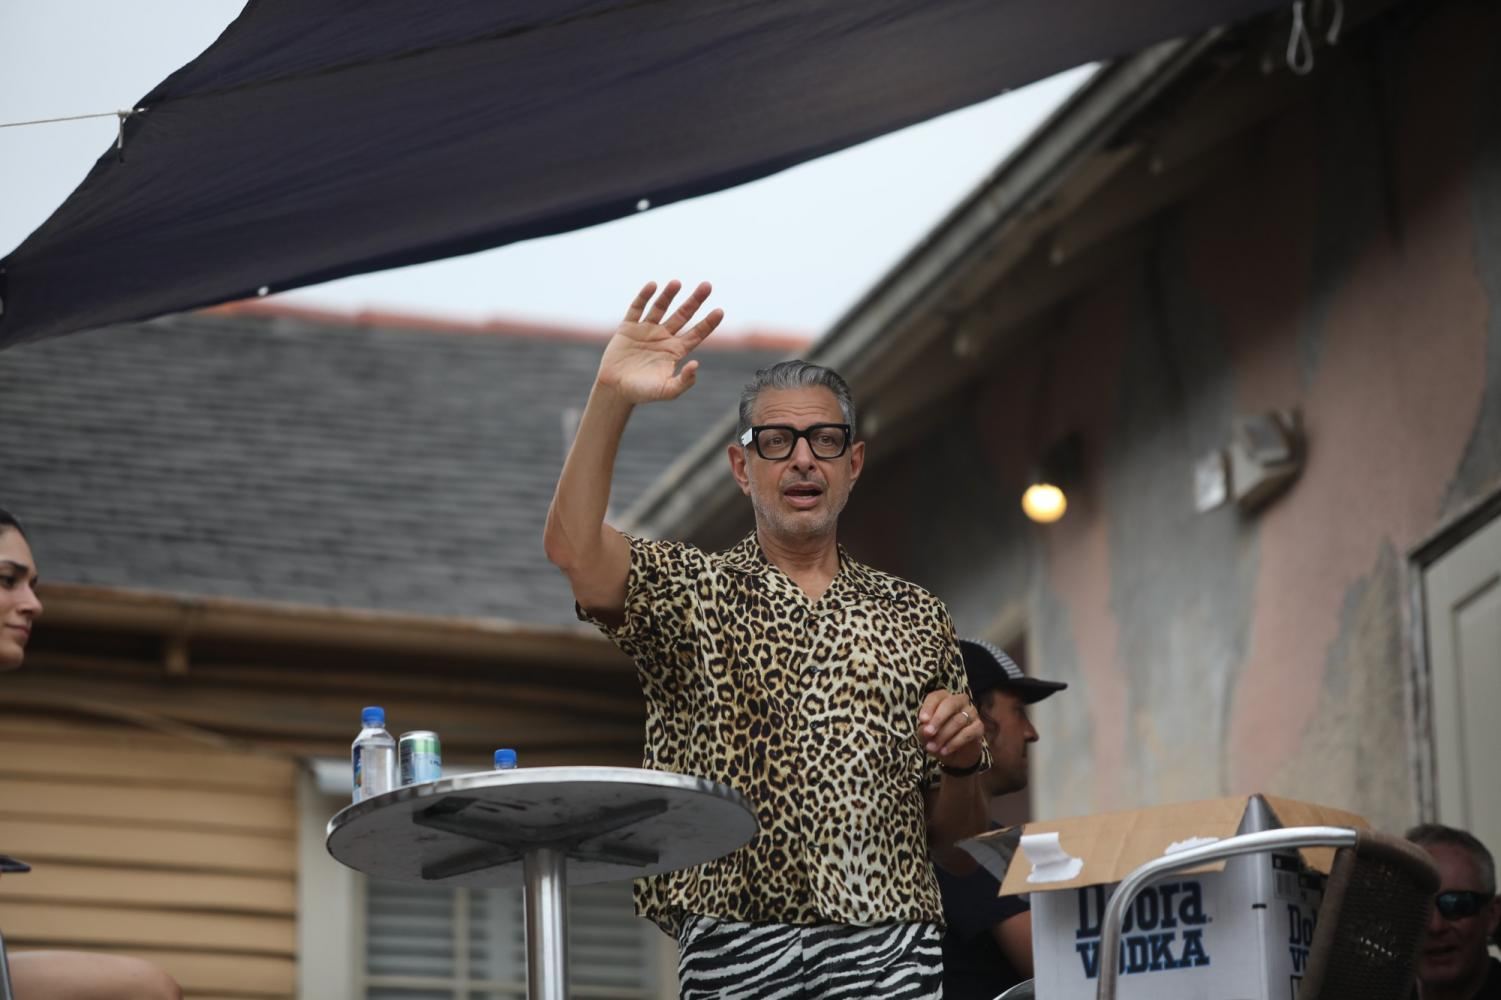 Actor+Jeff+Goldblum+waves+to+a+festival+go-er+after+the+Southern+Decadence+parade+on+September+1%2C+2019.+Photo+credit%3A+Andres+Fuentes